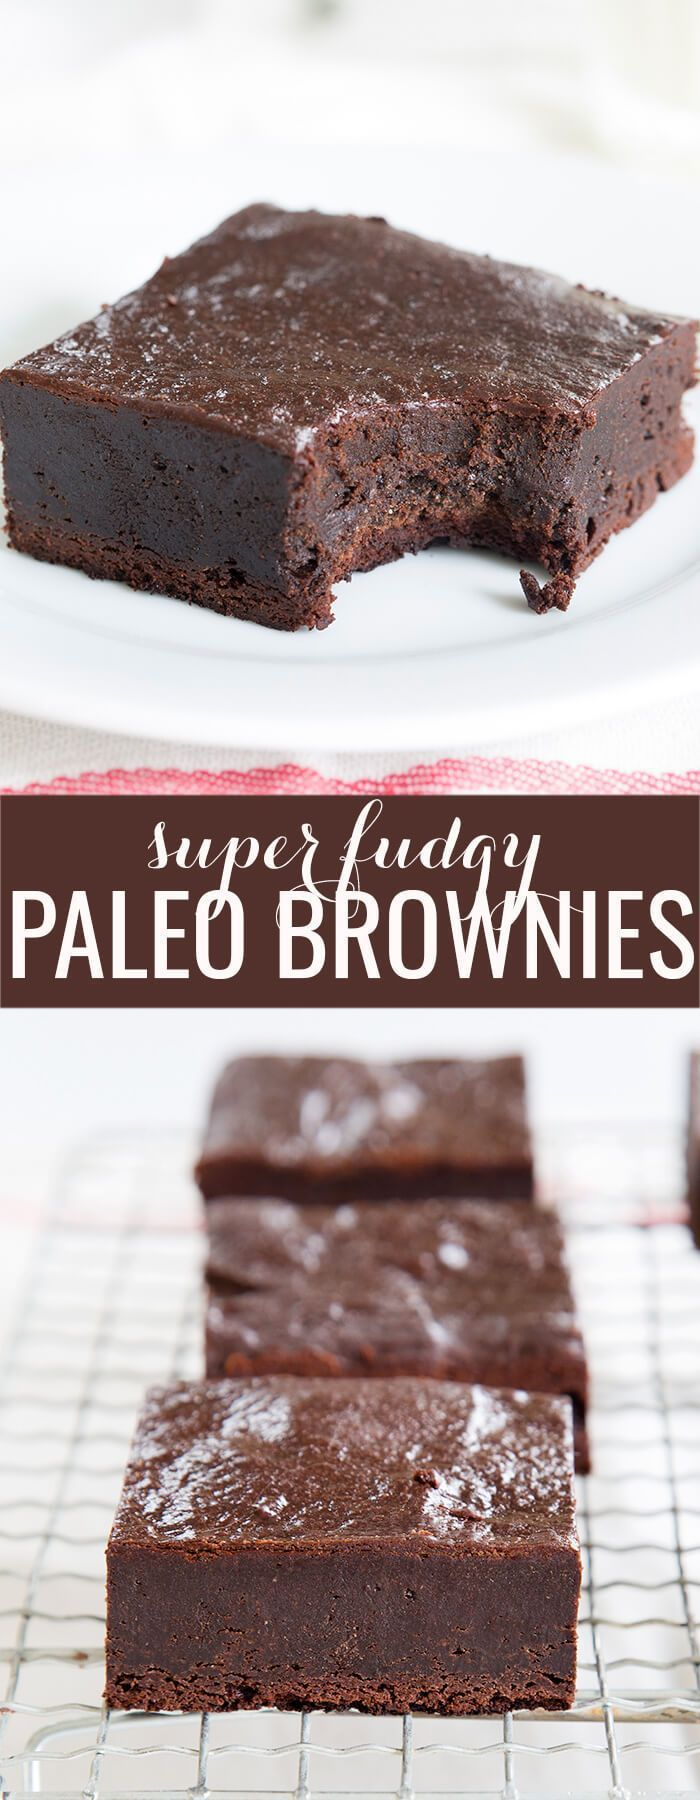 Super fudgy Paleo brownies, made with plenty of chopped chocolate, almond flour and a touch of coconut flour, will be your new favorite—Paleo or not!